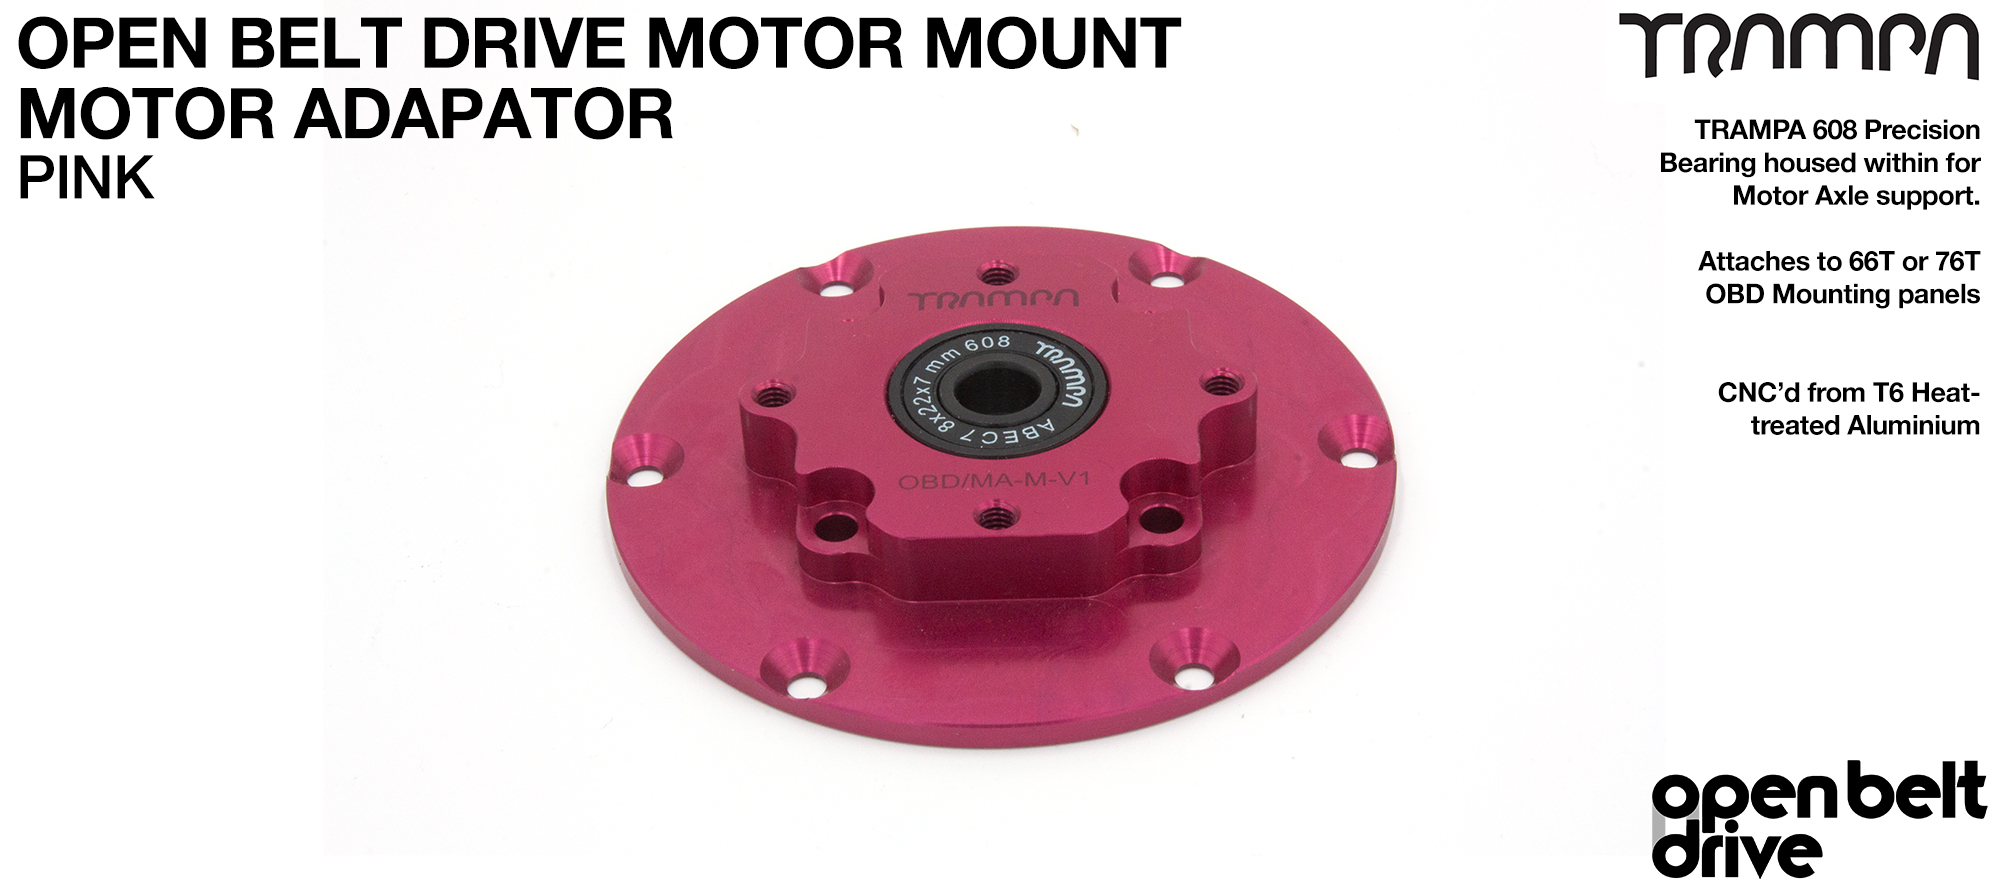 PINK OBD Motor Adaptor with Housed Bearing